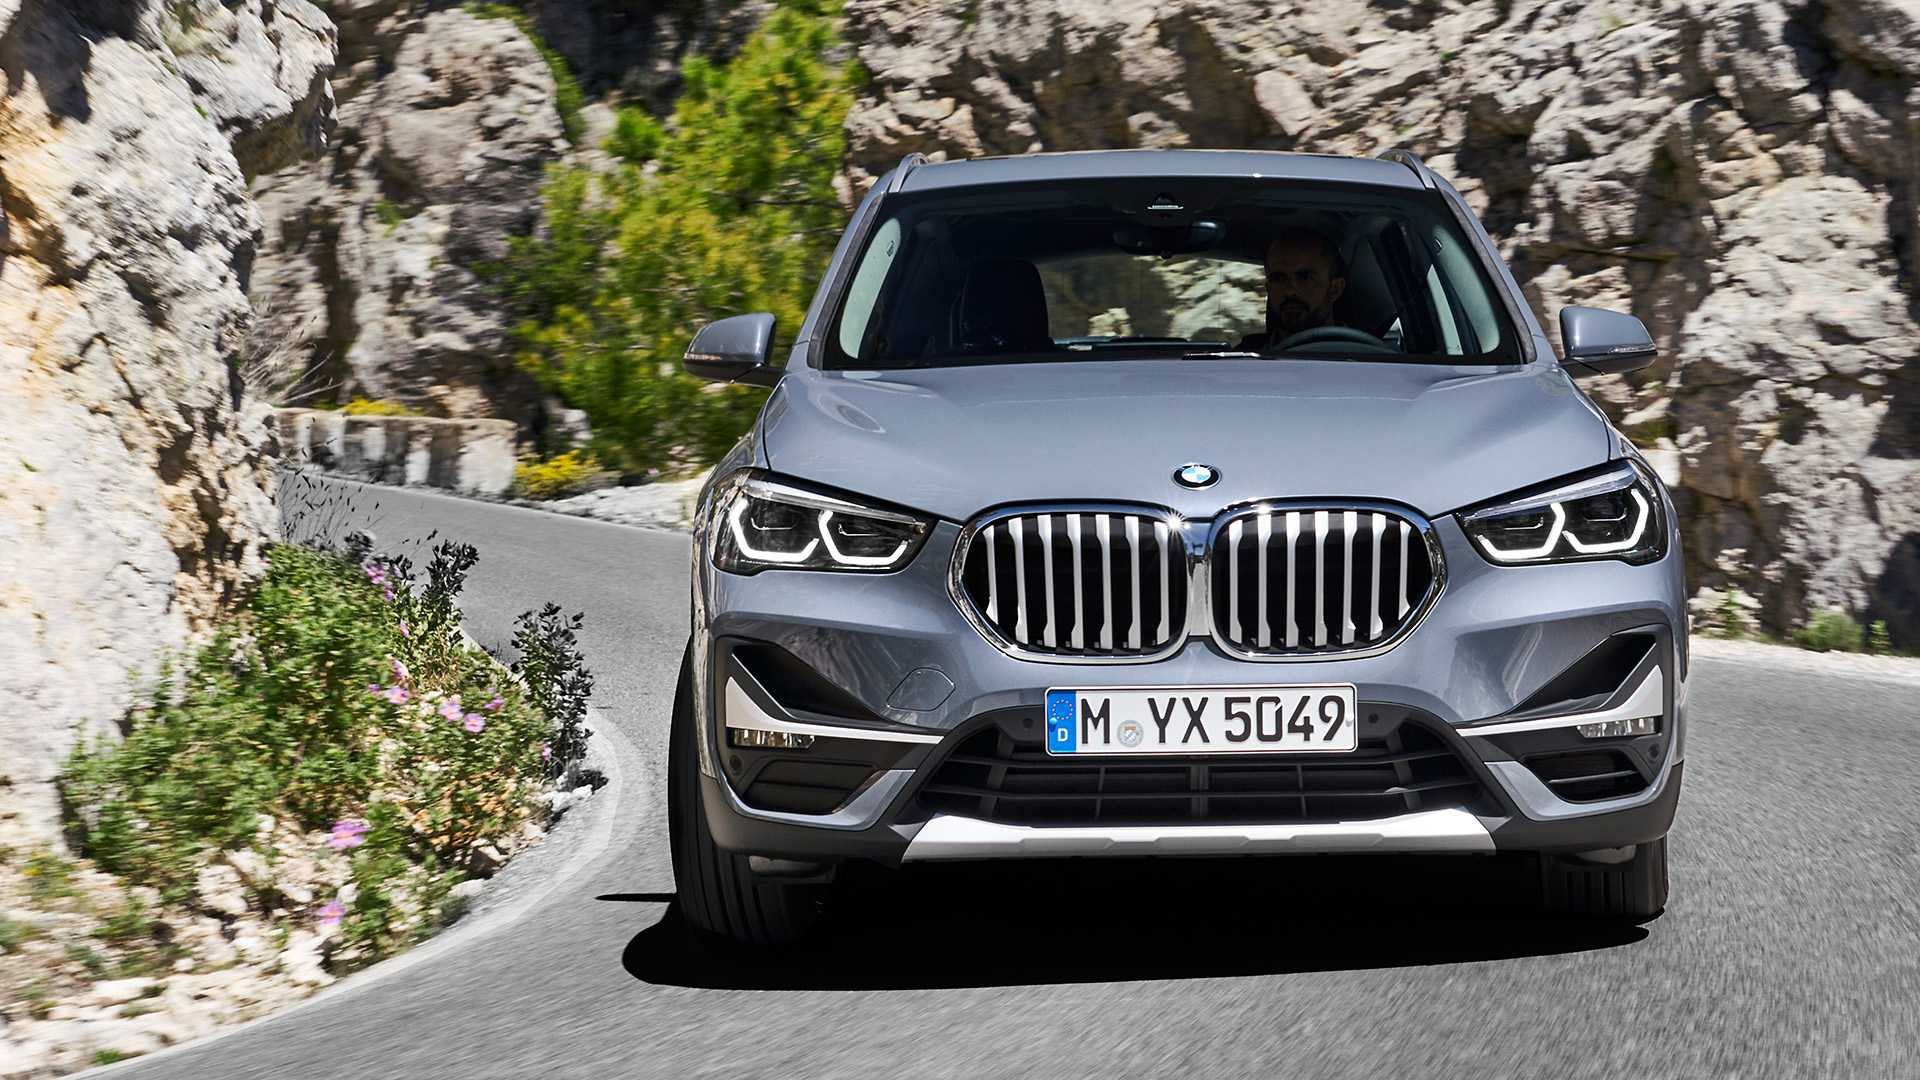 2020 Bmw X1 Suv Debuts Minor Facelift For Mid Cycle Refresh